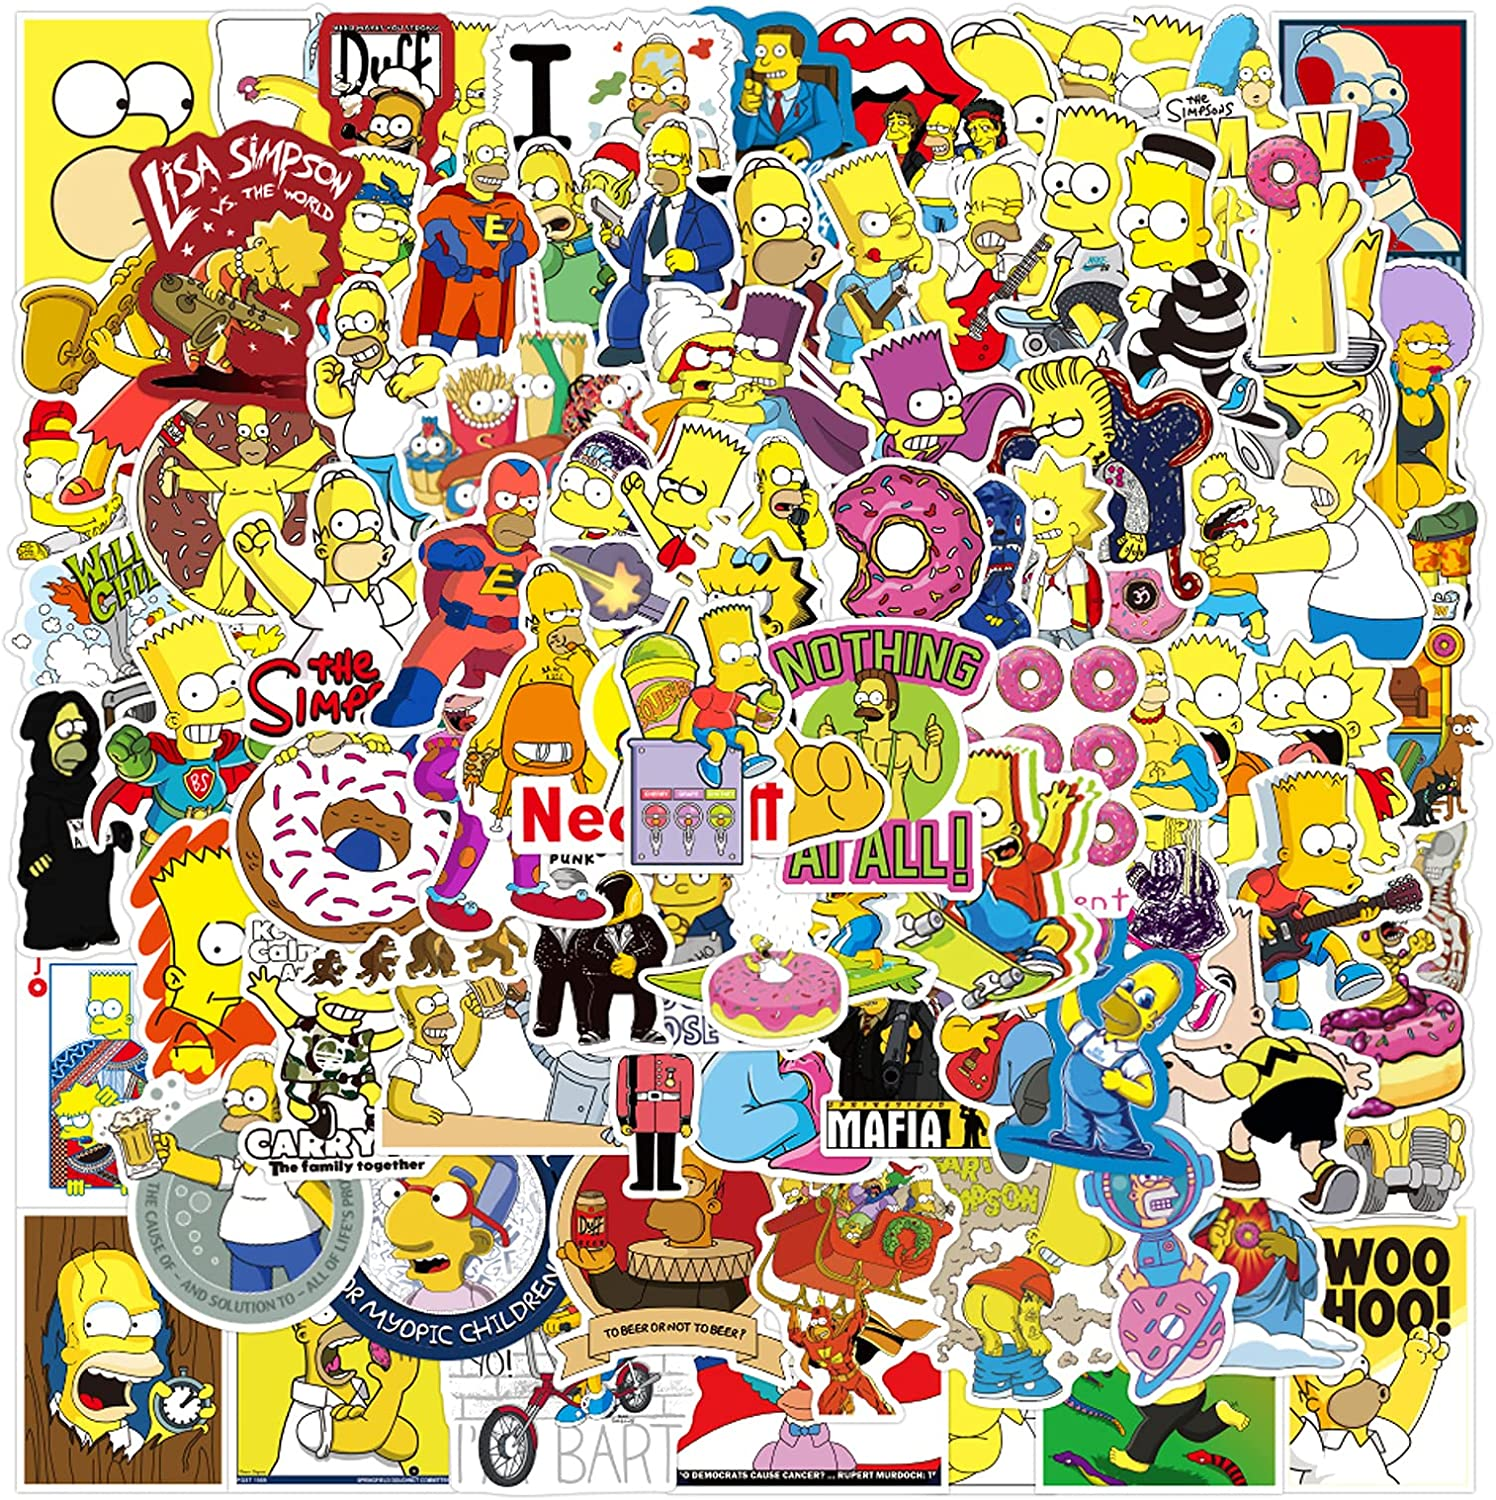 100PCS The Simpson Stickers Funny Laptop Stickers Pack Cool Cartoon Waterproof Decals for Car, Hydro Flasks, Water Bottle, Skateboard